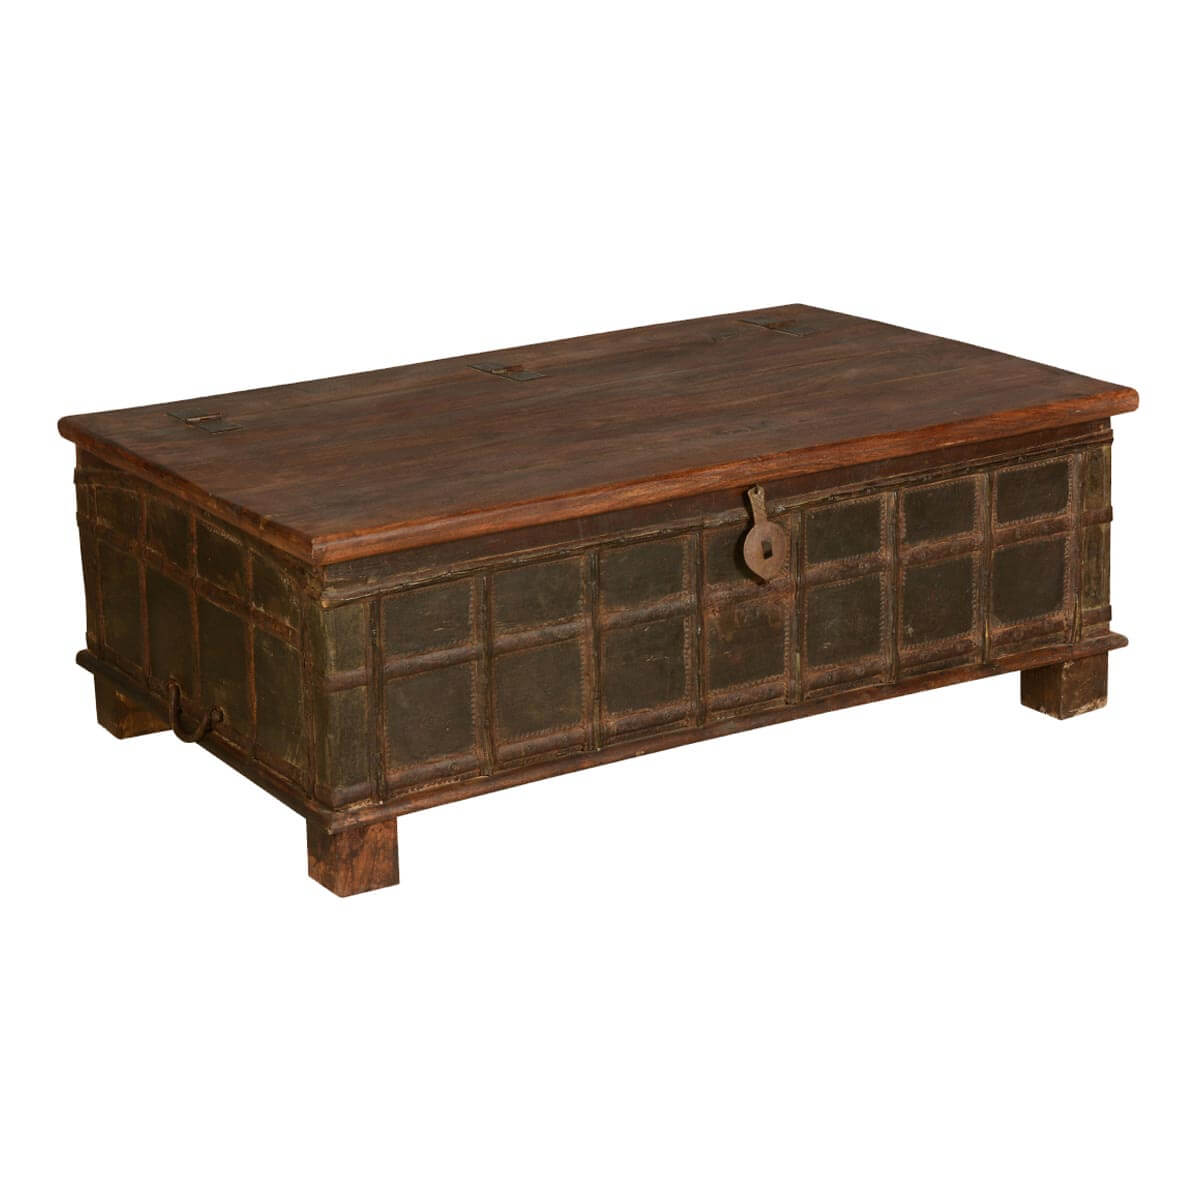 Gothic Traditional Distressed Reclaimed Wood Coffee Table